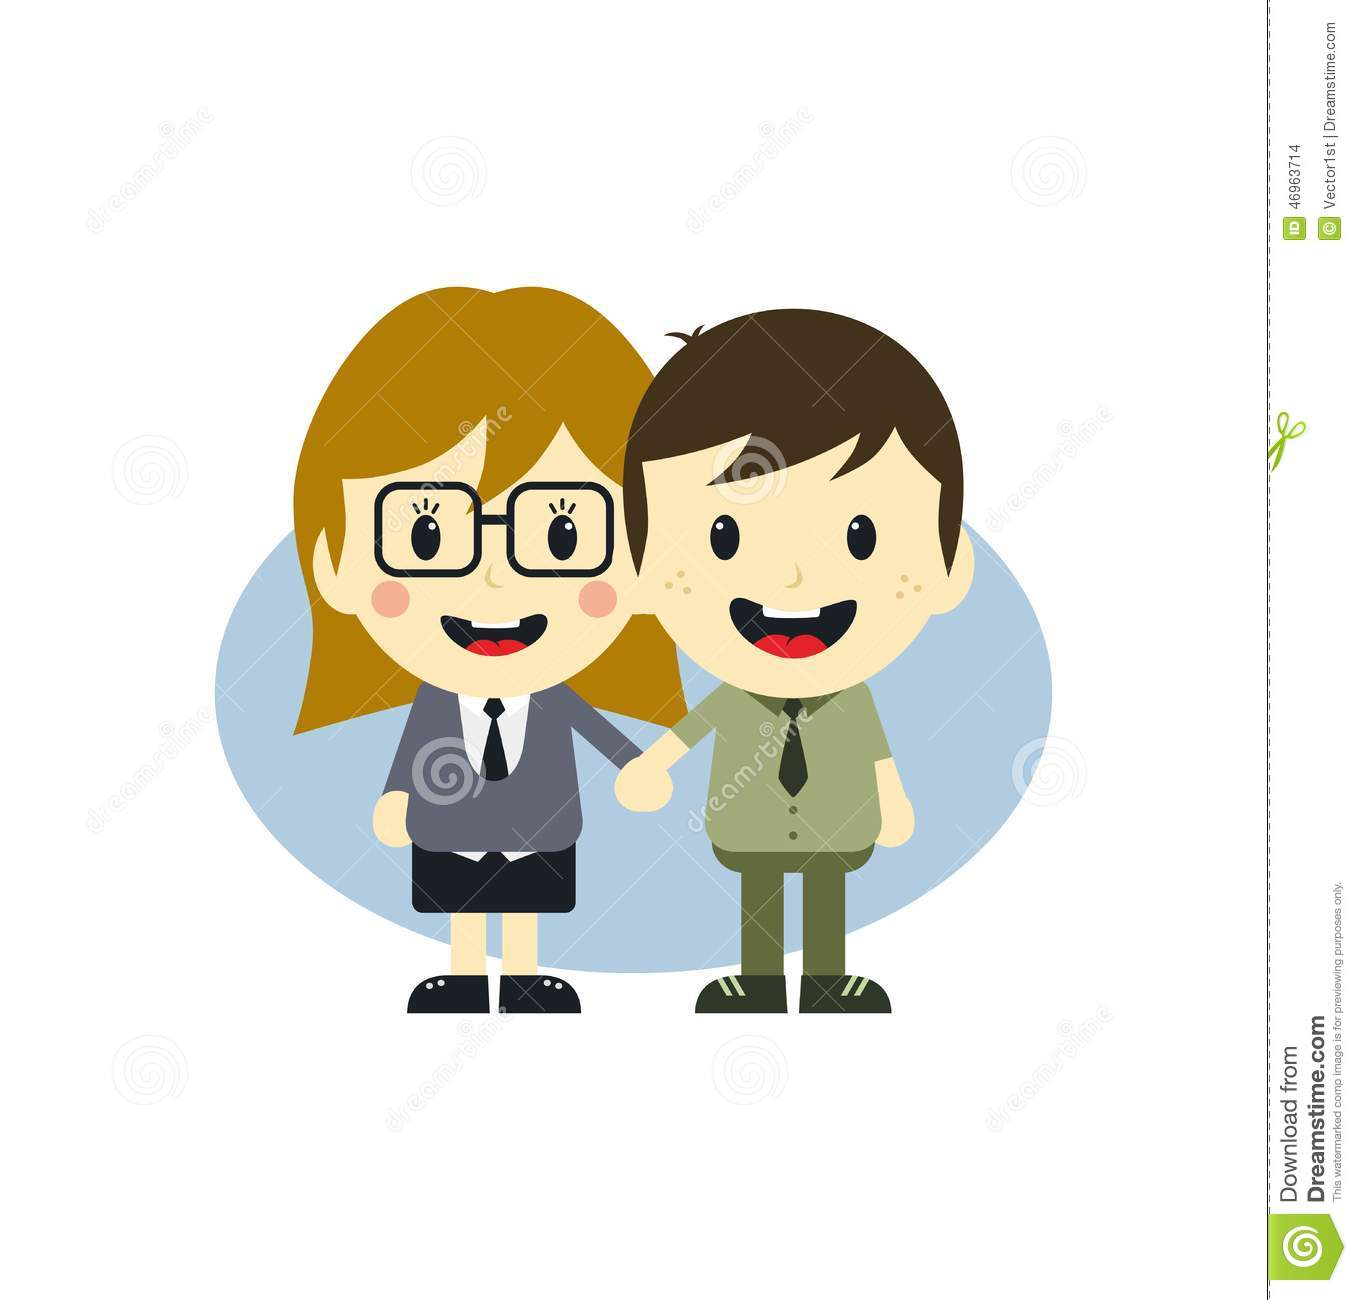 Cartoon Characters Couples : Love couple cartoon character stock vector illustration